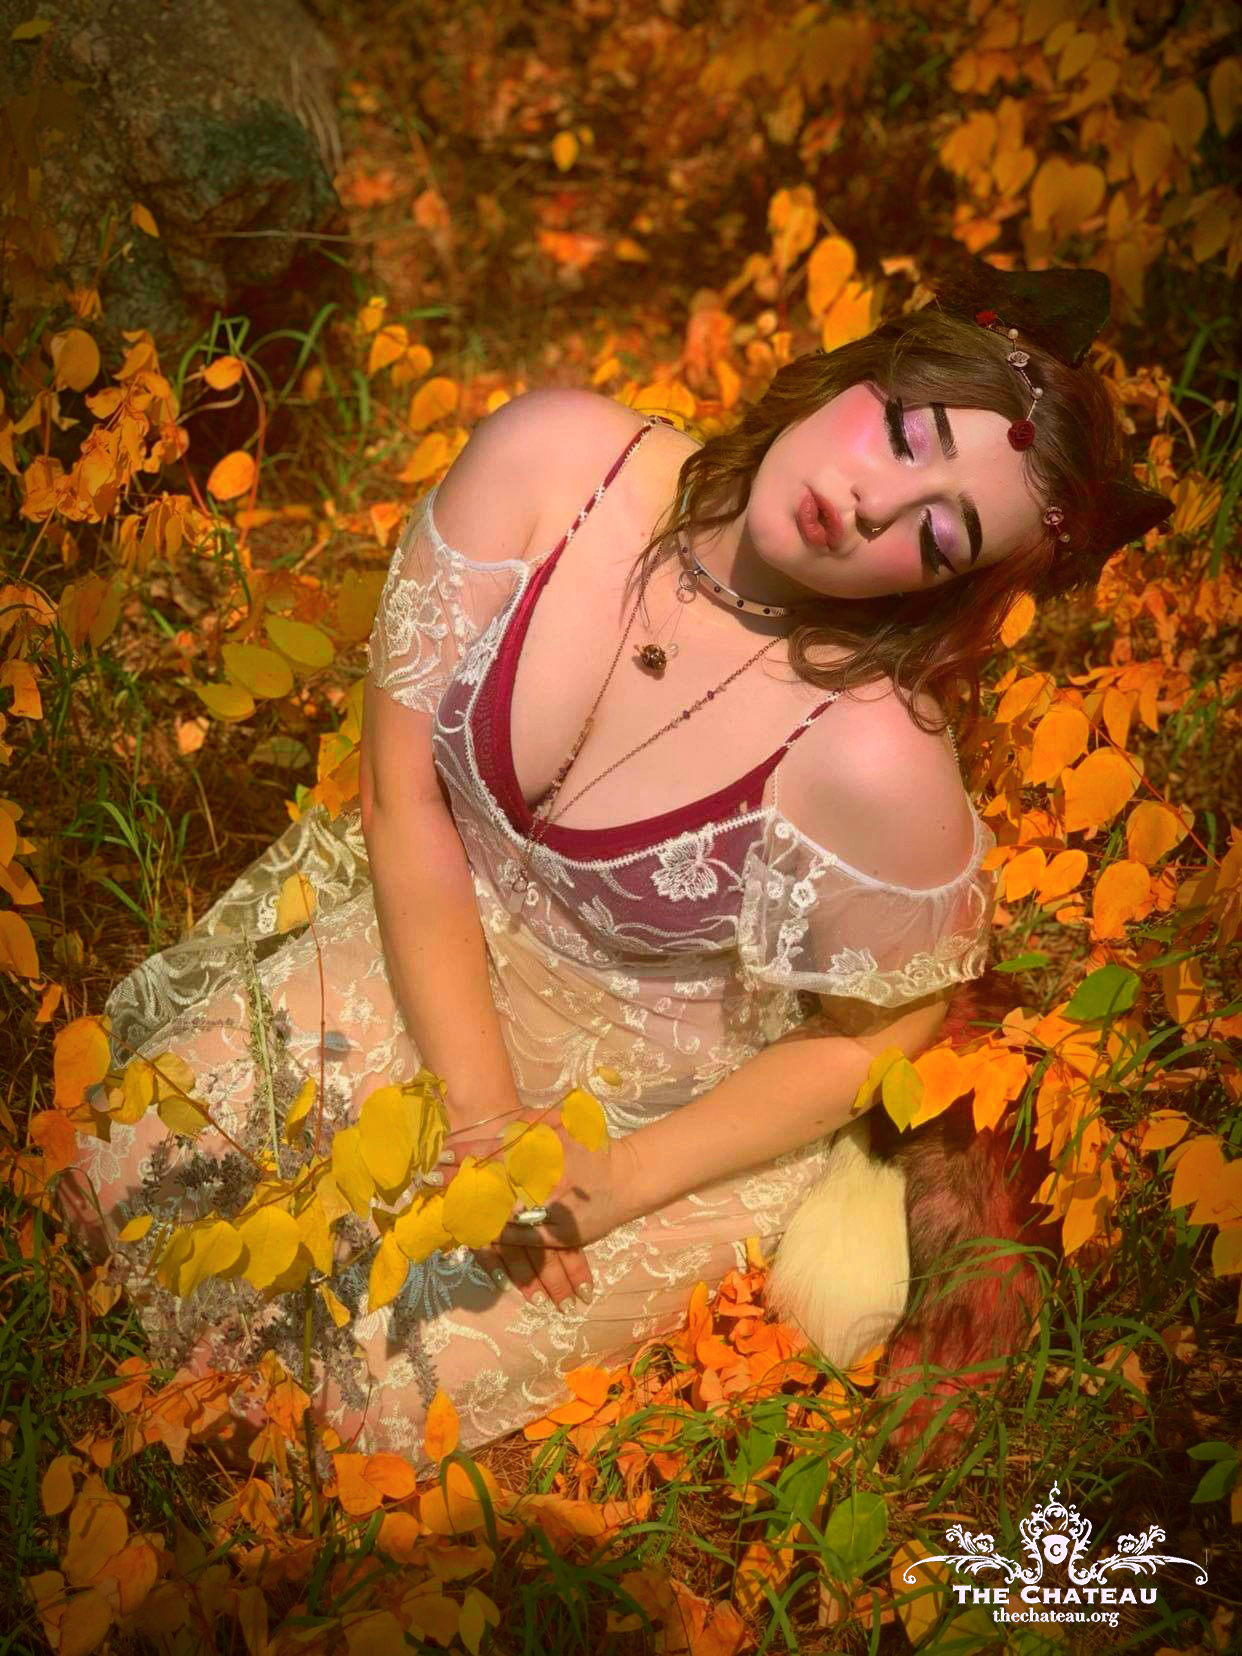 Longing for Autumn with Lexi_Denver post thumbnail